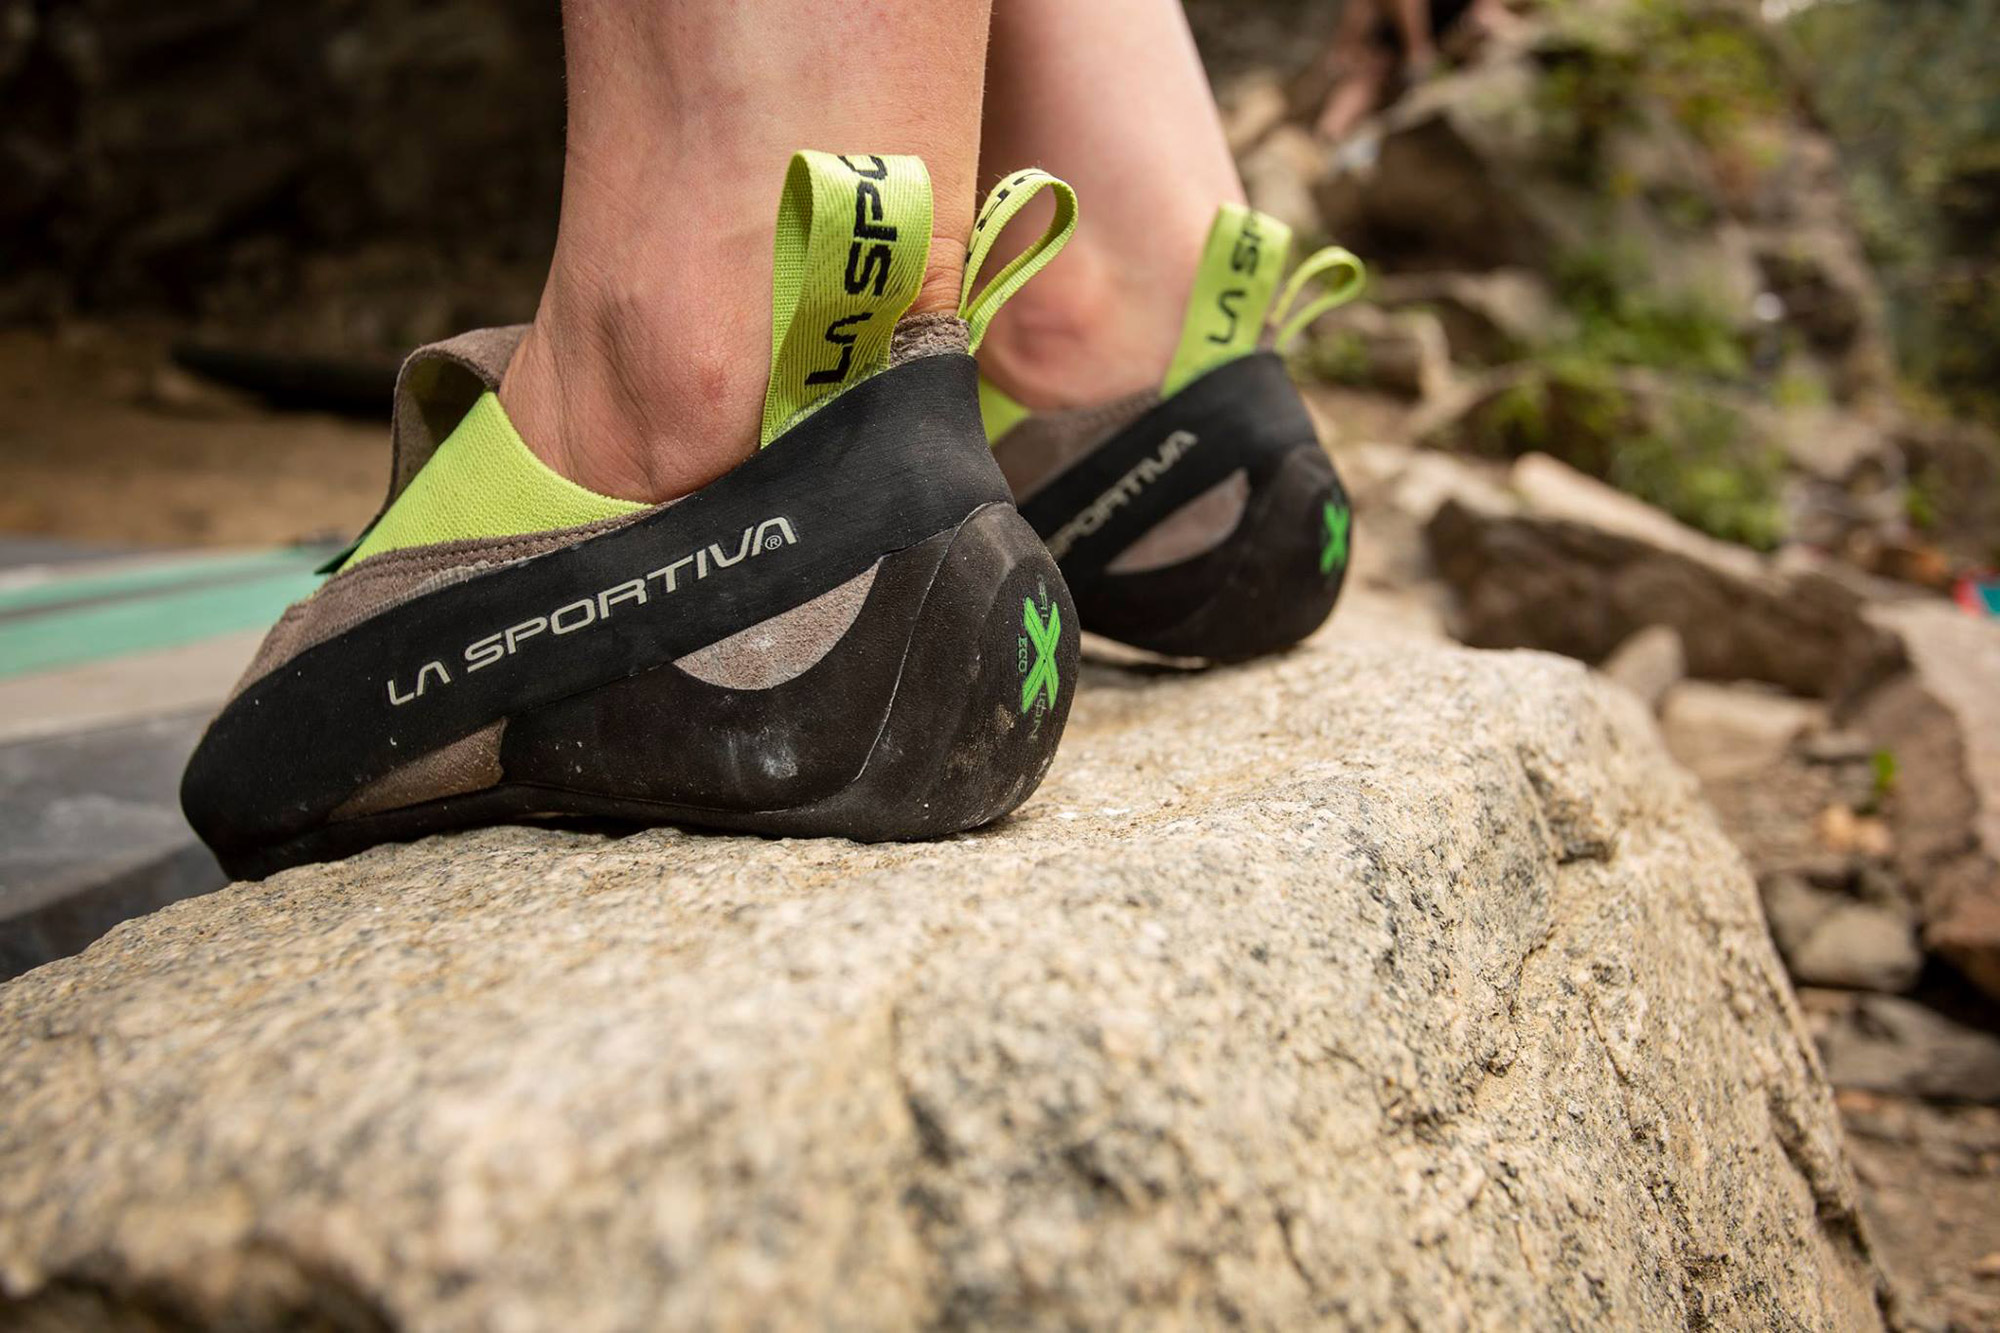 Courtesy: La Sportiva